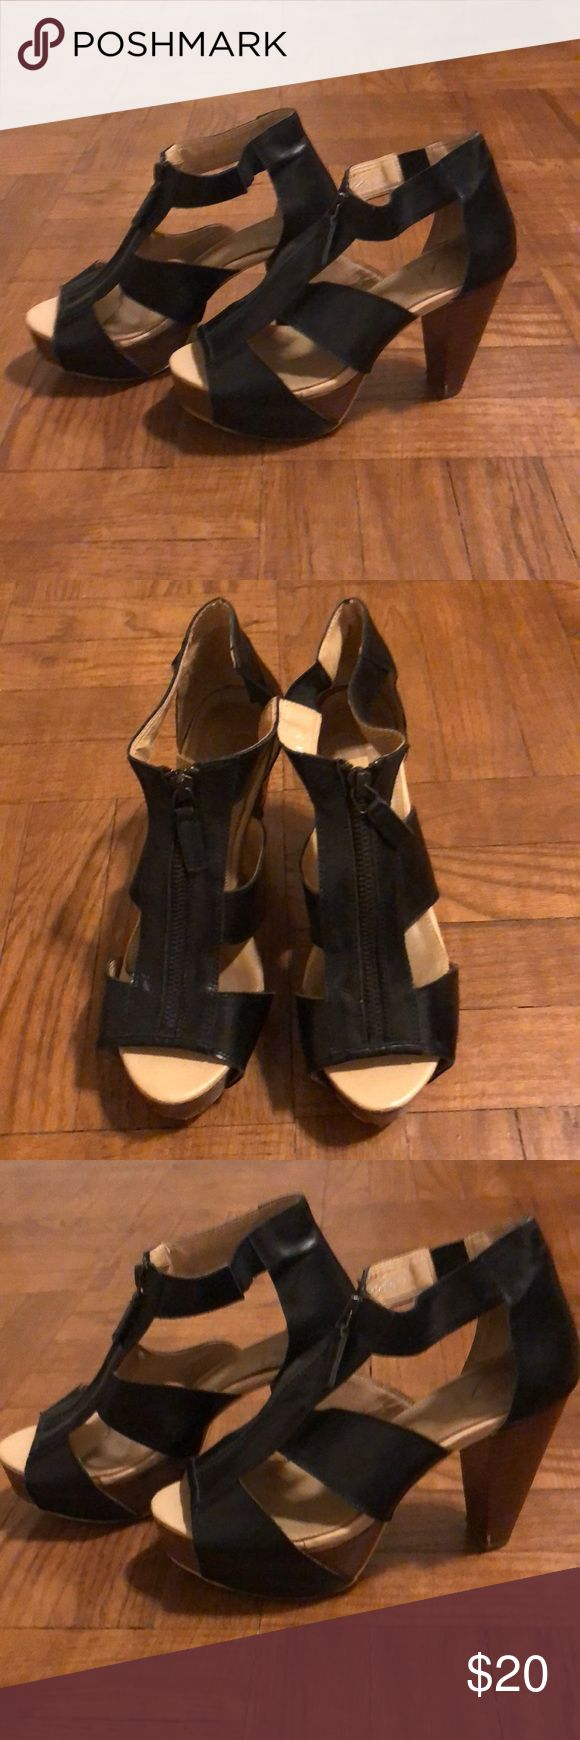 Charlotte Ronson Heels Charlotte Ronson brand sandal heels. Size 7. Black upper and wooden look heel and platform. Zipper front detail. Very good condition Charlotte Ronson Shoes Heels